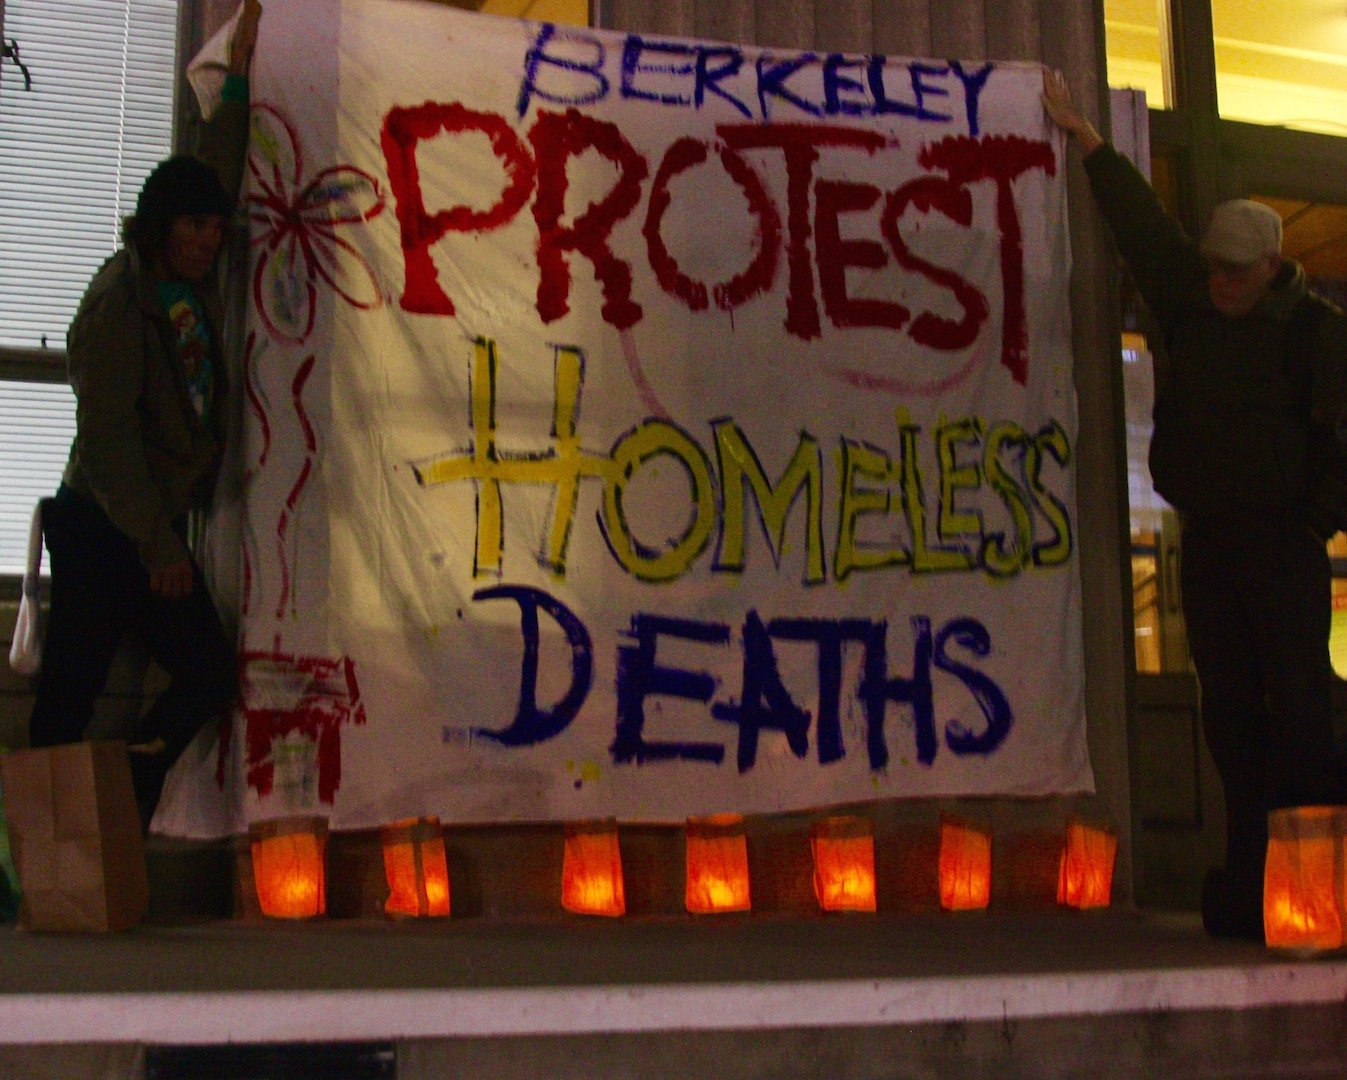 "Advocates for the homeless held a vigil on the steps of Berkeley's City Council for Laura Jadwin, a horticulturist who died homeless on Martin Luther King, Jr. Way, near Berkeley High School. ""There's a terror of dying poor, and a terror of dying alone. We are here to say her life mattered,"" said one woman at the vigil."